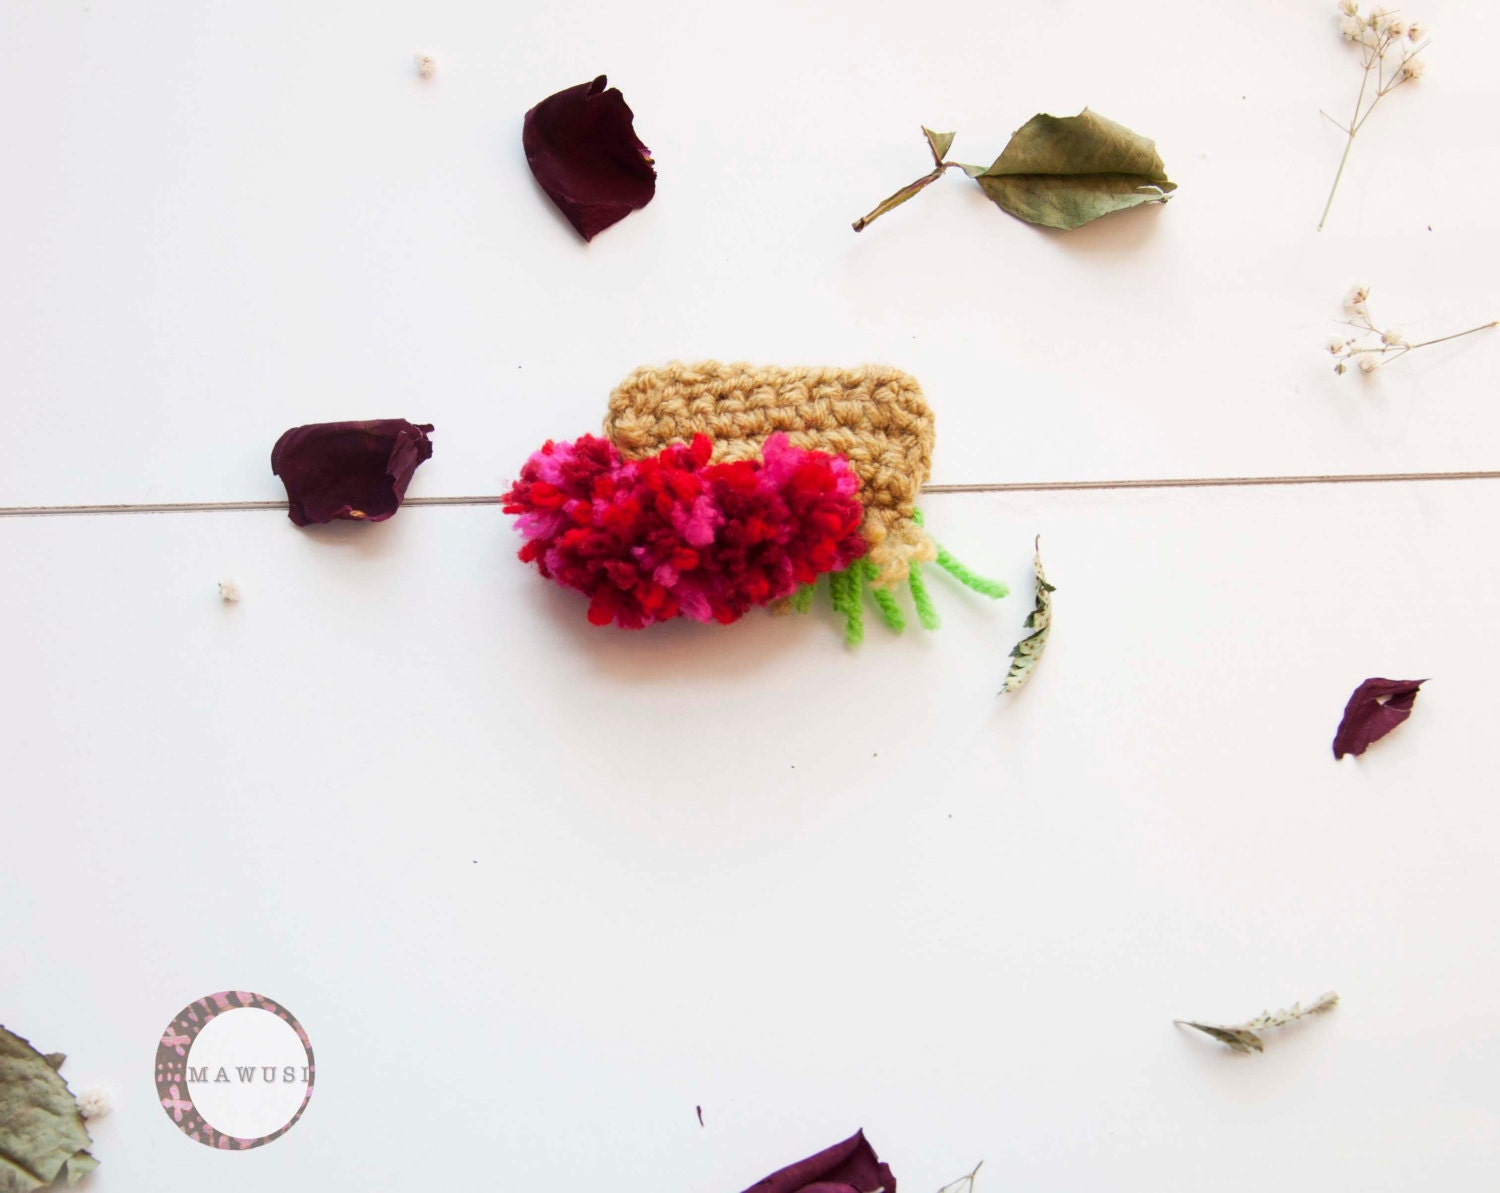 NEW: ESI Colorful Crochet Brooch - Mawusi